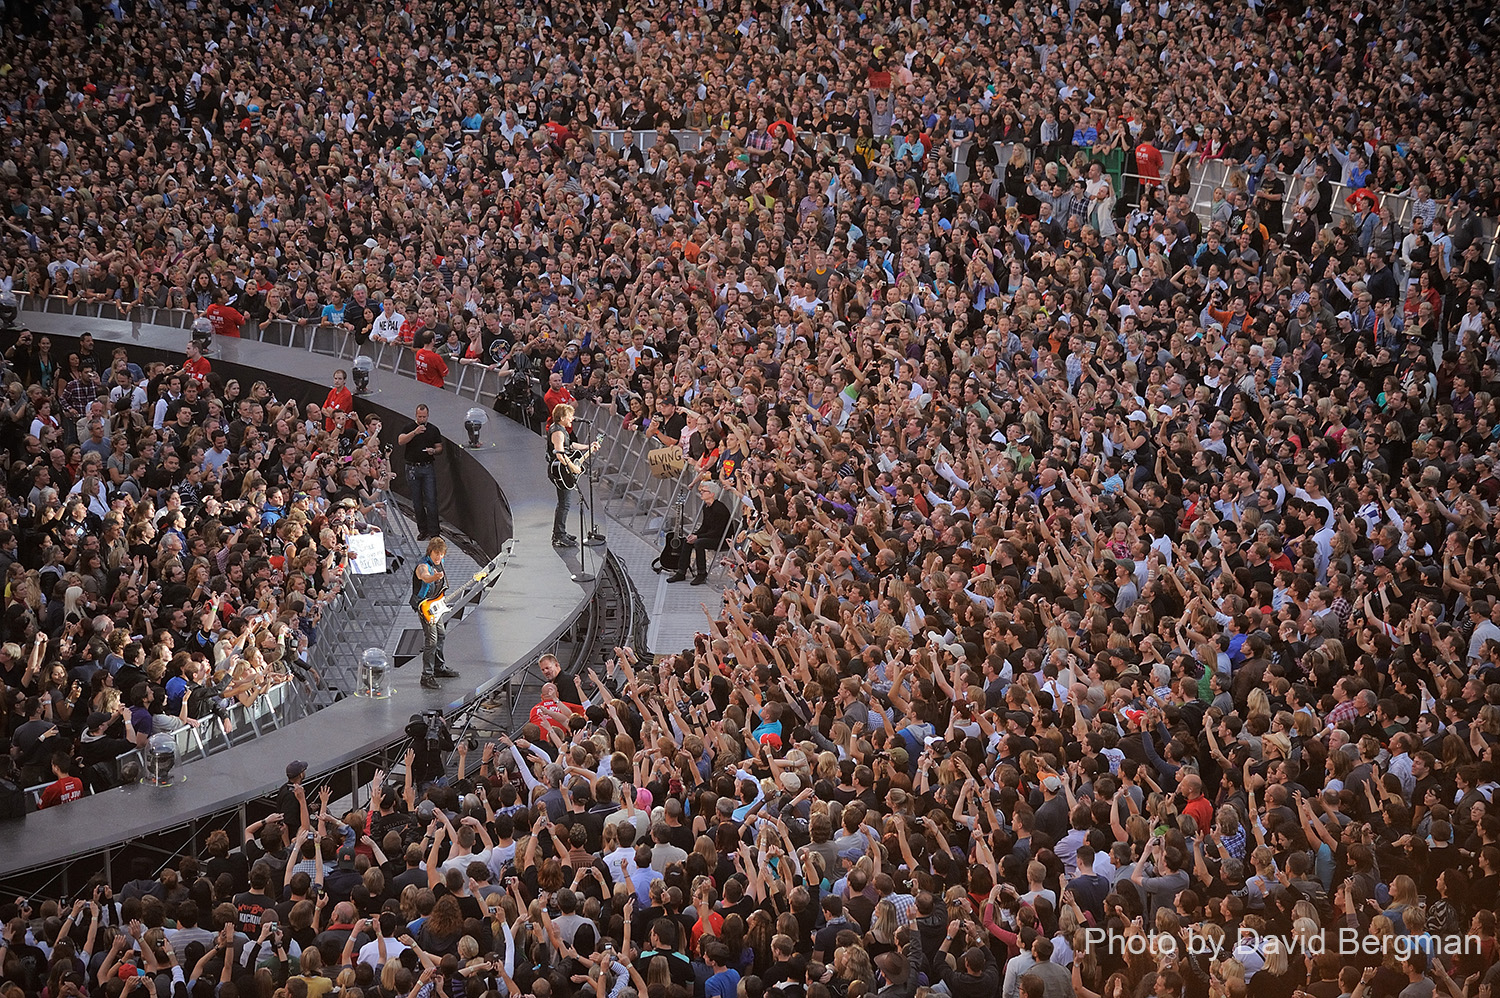 Photo ©2011 David Bergman for http://www.TourPhotographer.com - Bon Jovi official photos from the Open Air 2011 tour at the Letzigrund Stadium in Zurich, CH on July 14, 2011.